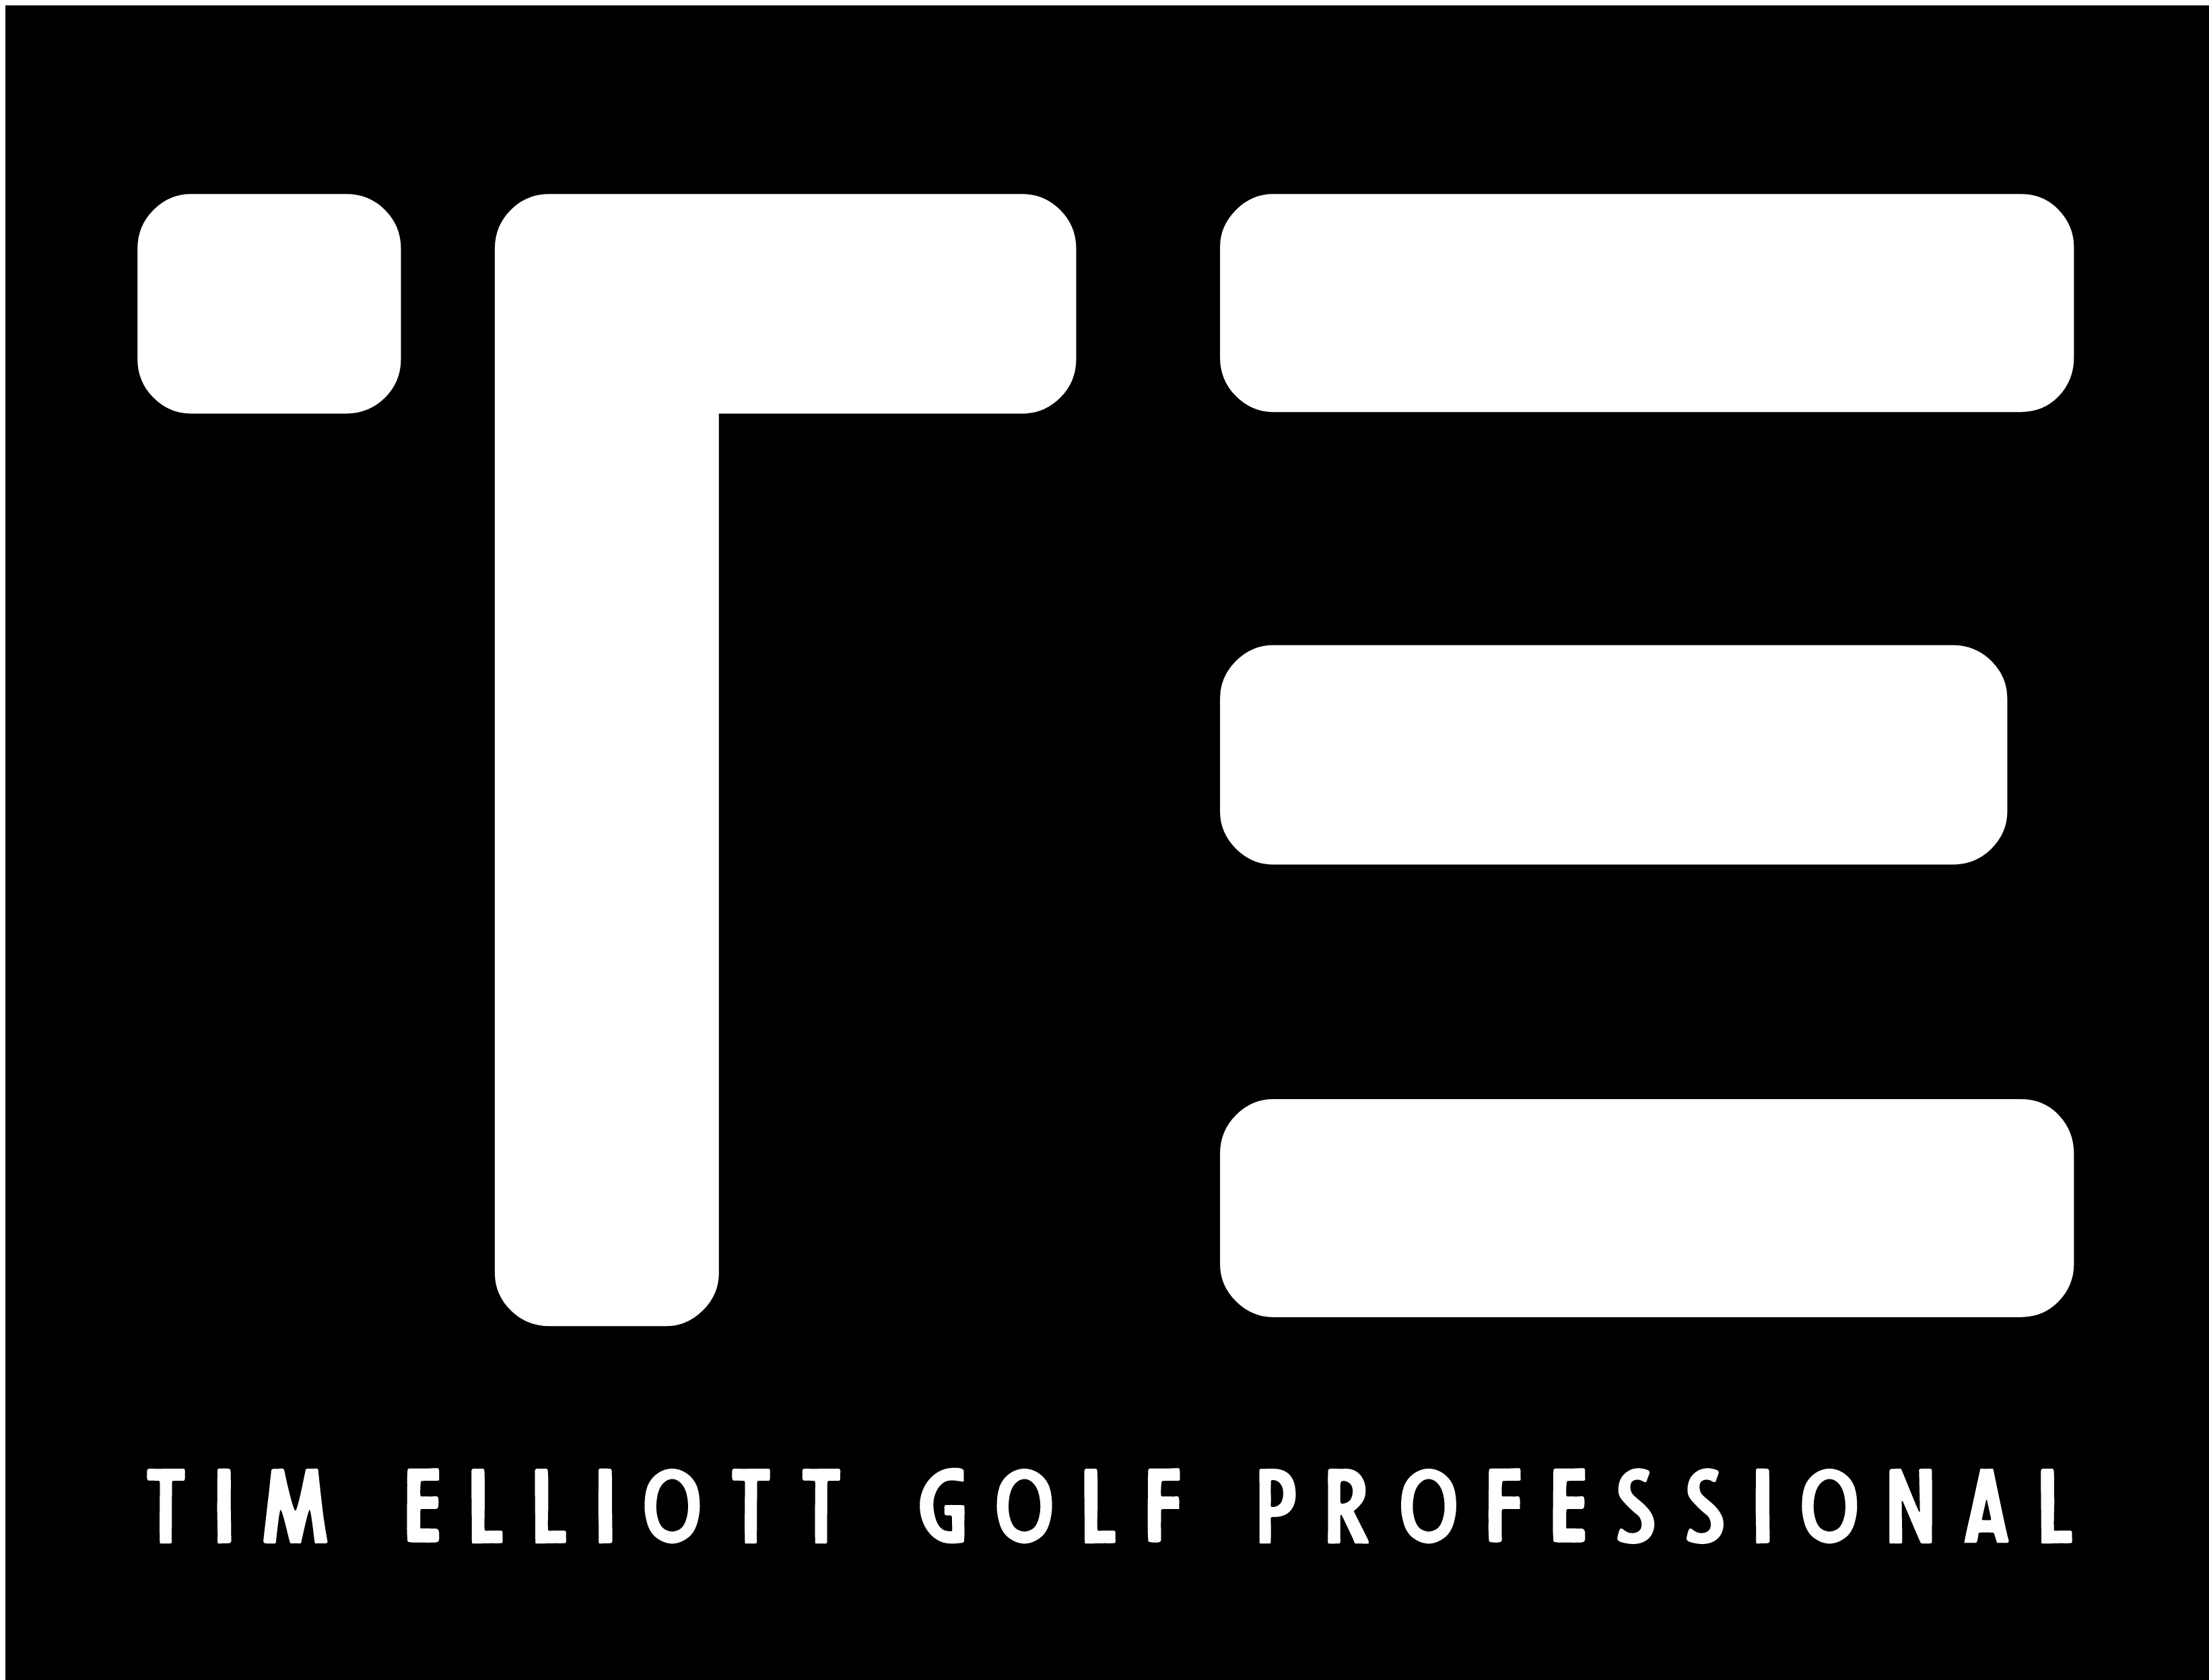 Tim Elliott Golf Professional